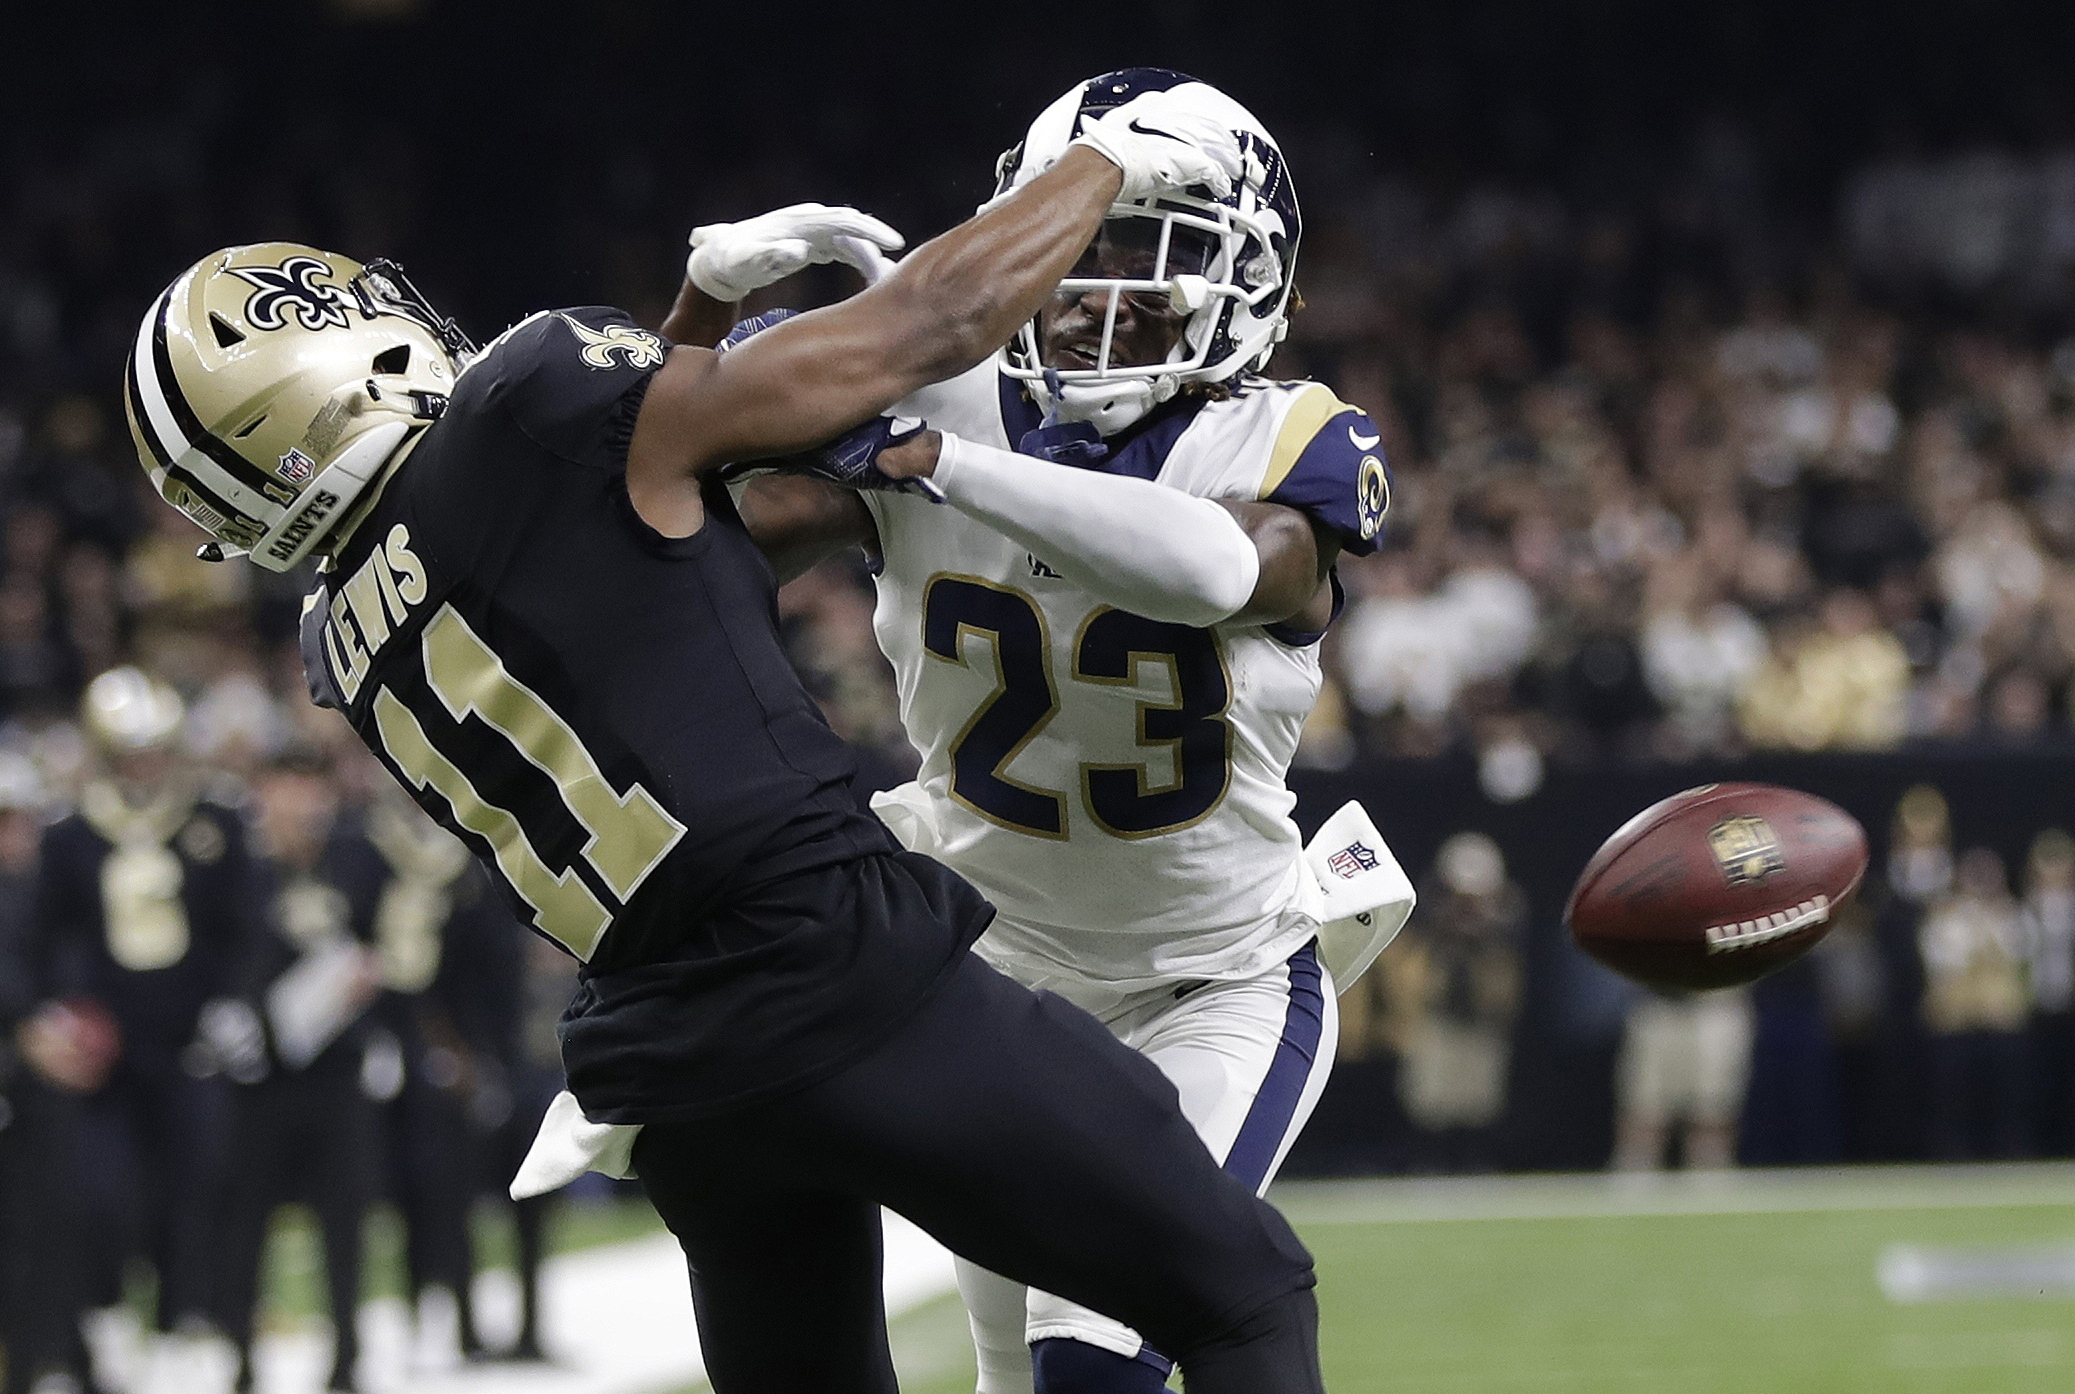 Saints-Rams-Playoff_Lawsuit_Football_11630-159532.jpg22721761